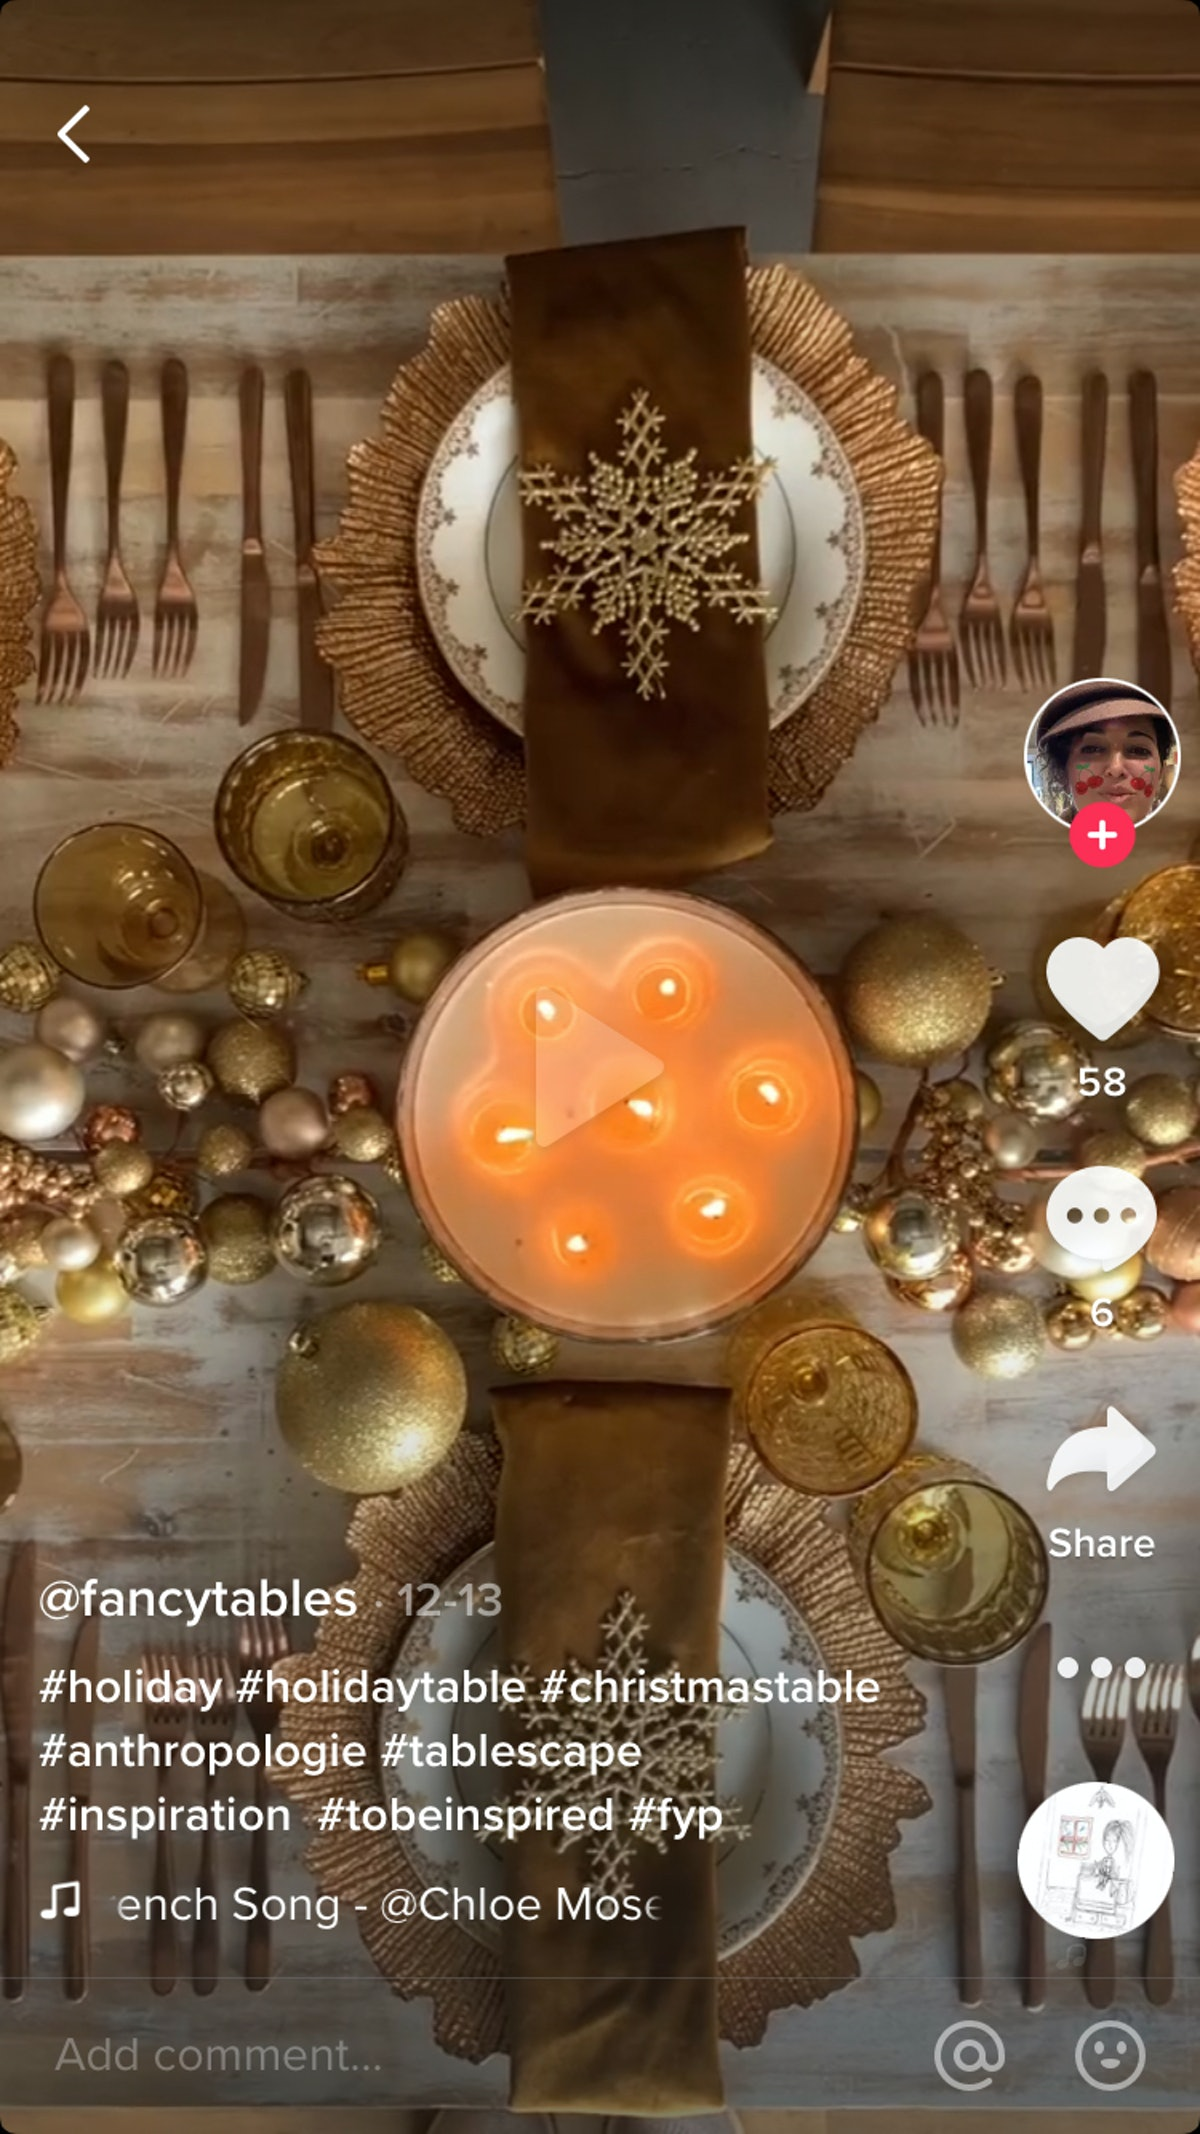 A TikTok user decorates a Christmas dinner table with gold charger plates, snowflake napkin rings, and golden garlands.